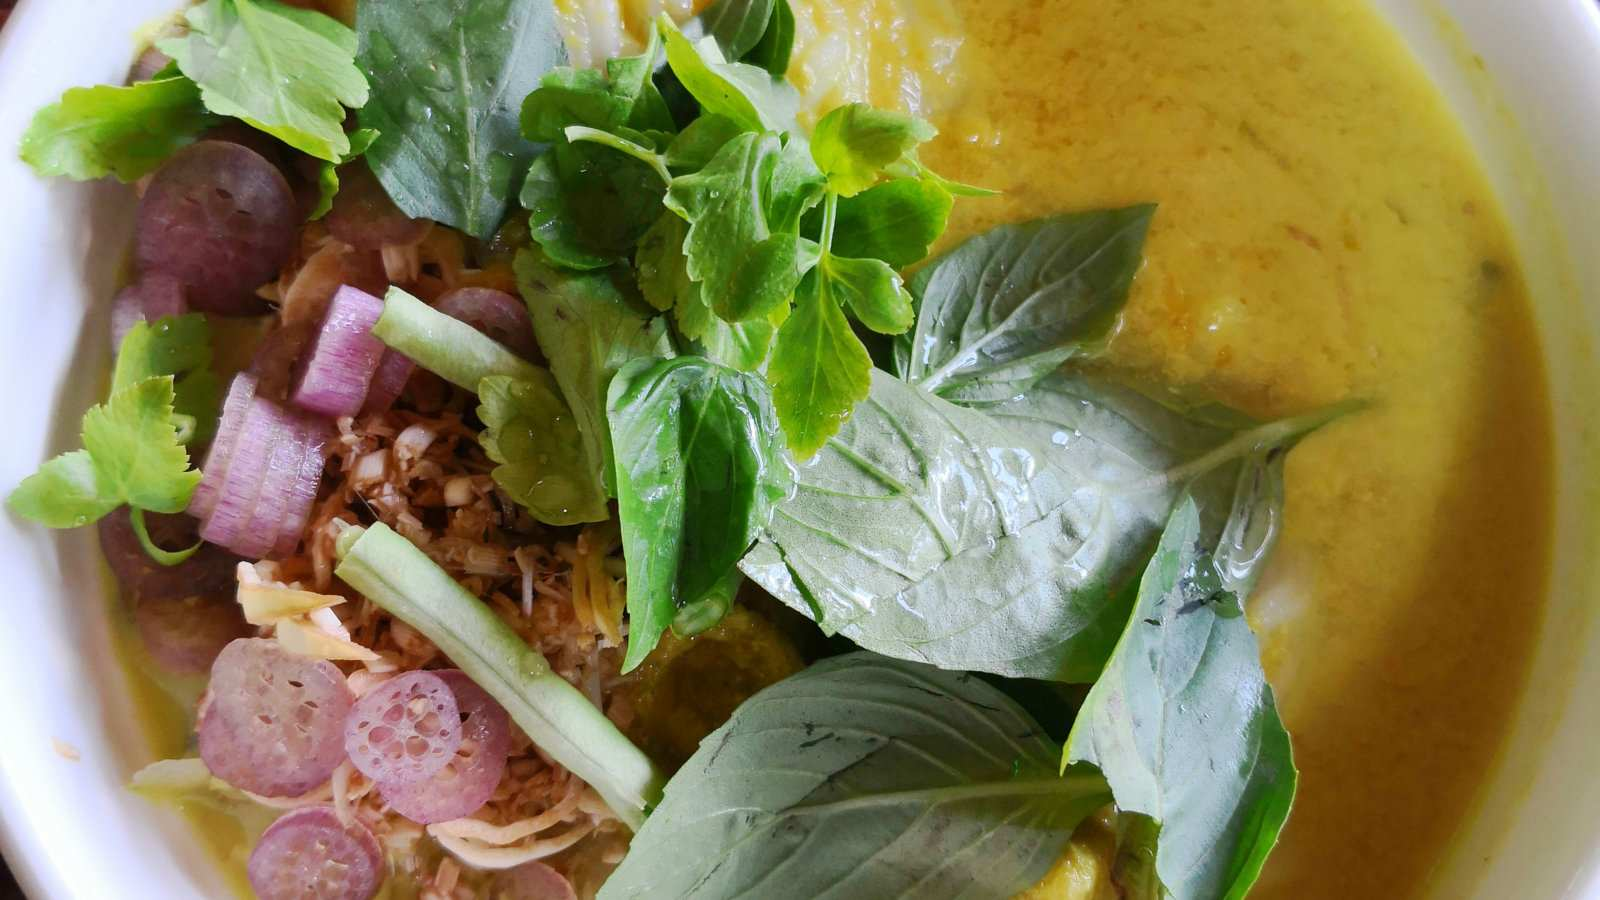 Num banh chok is a delicious noodle dish from Cambodia that's usually served for breakfast